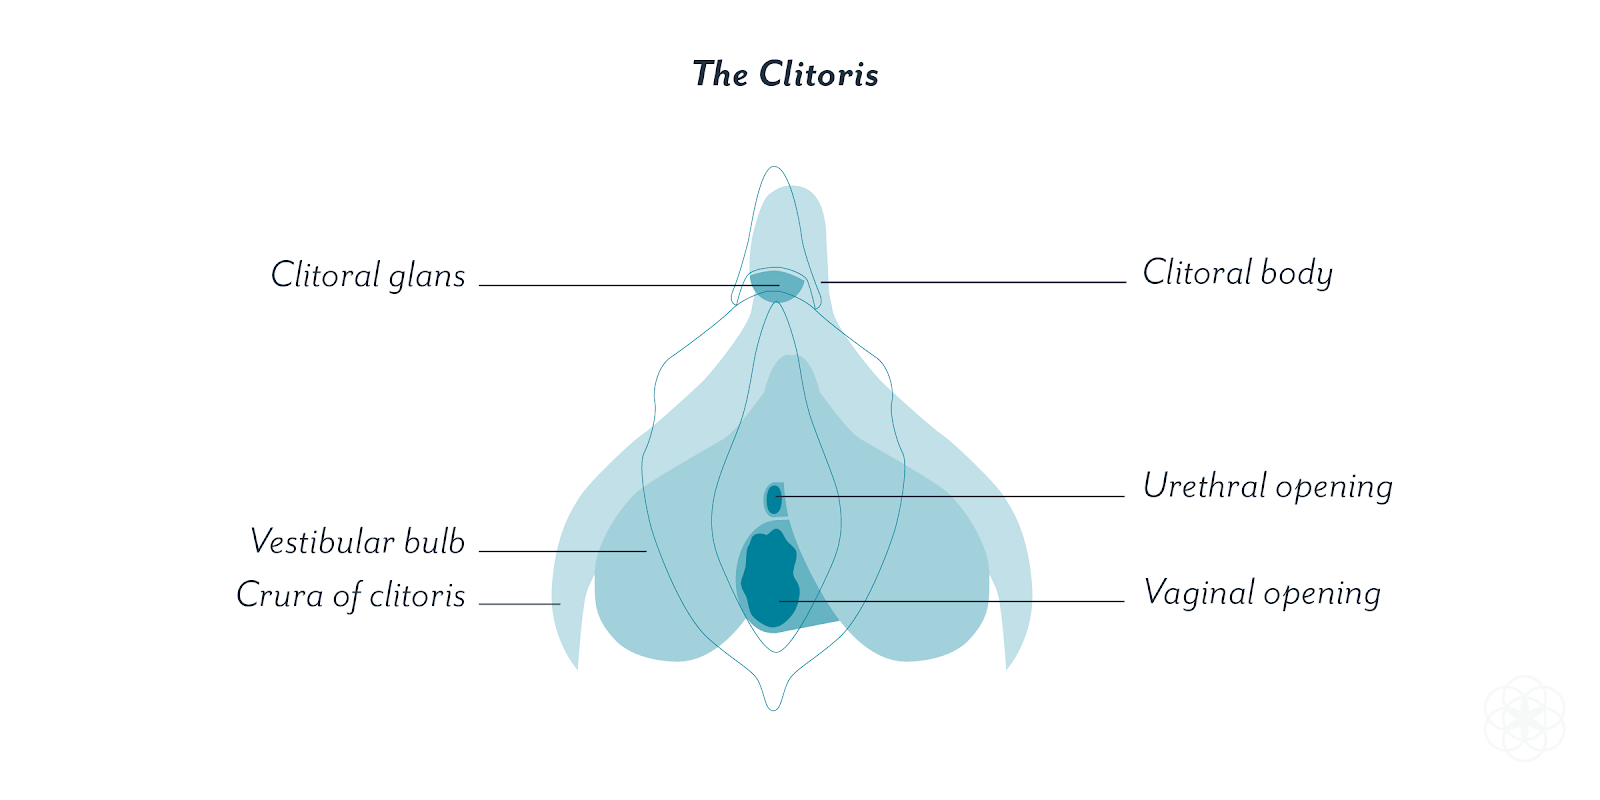 The Clitoris Not The Vagina Is The Female Homolog To The Male Penis